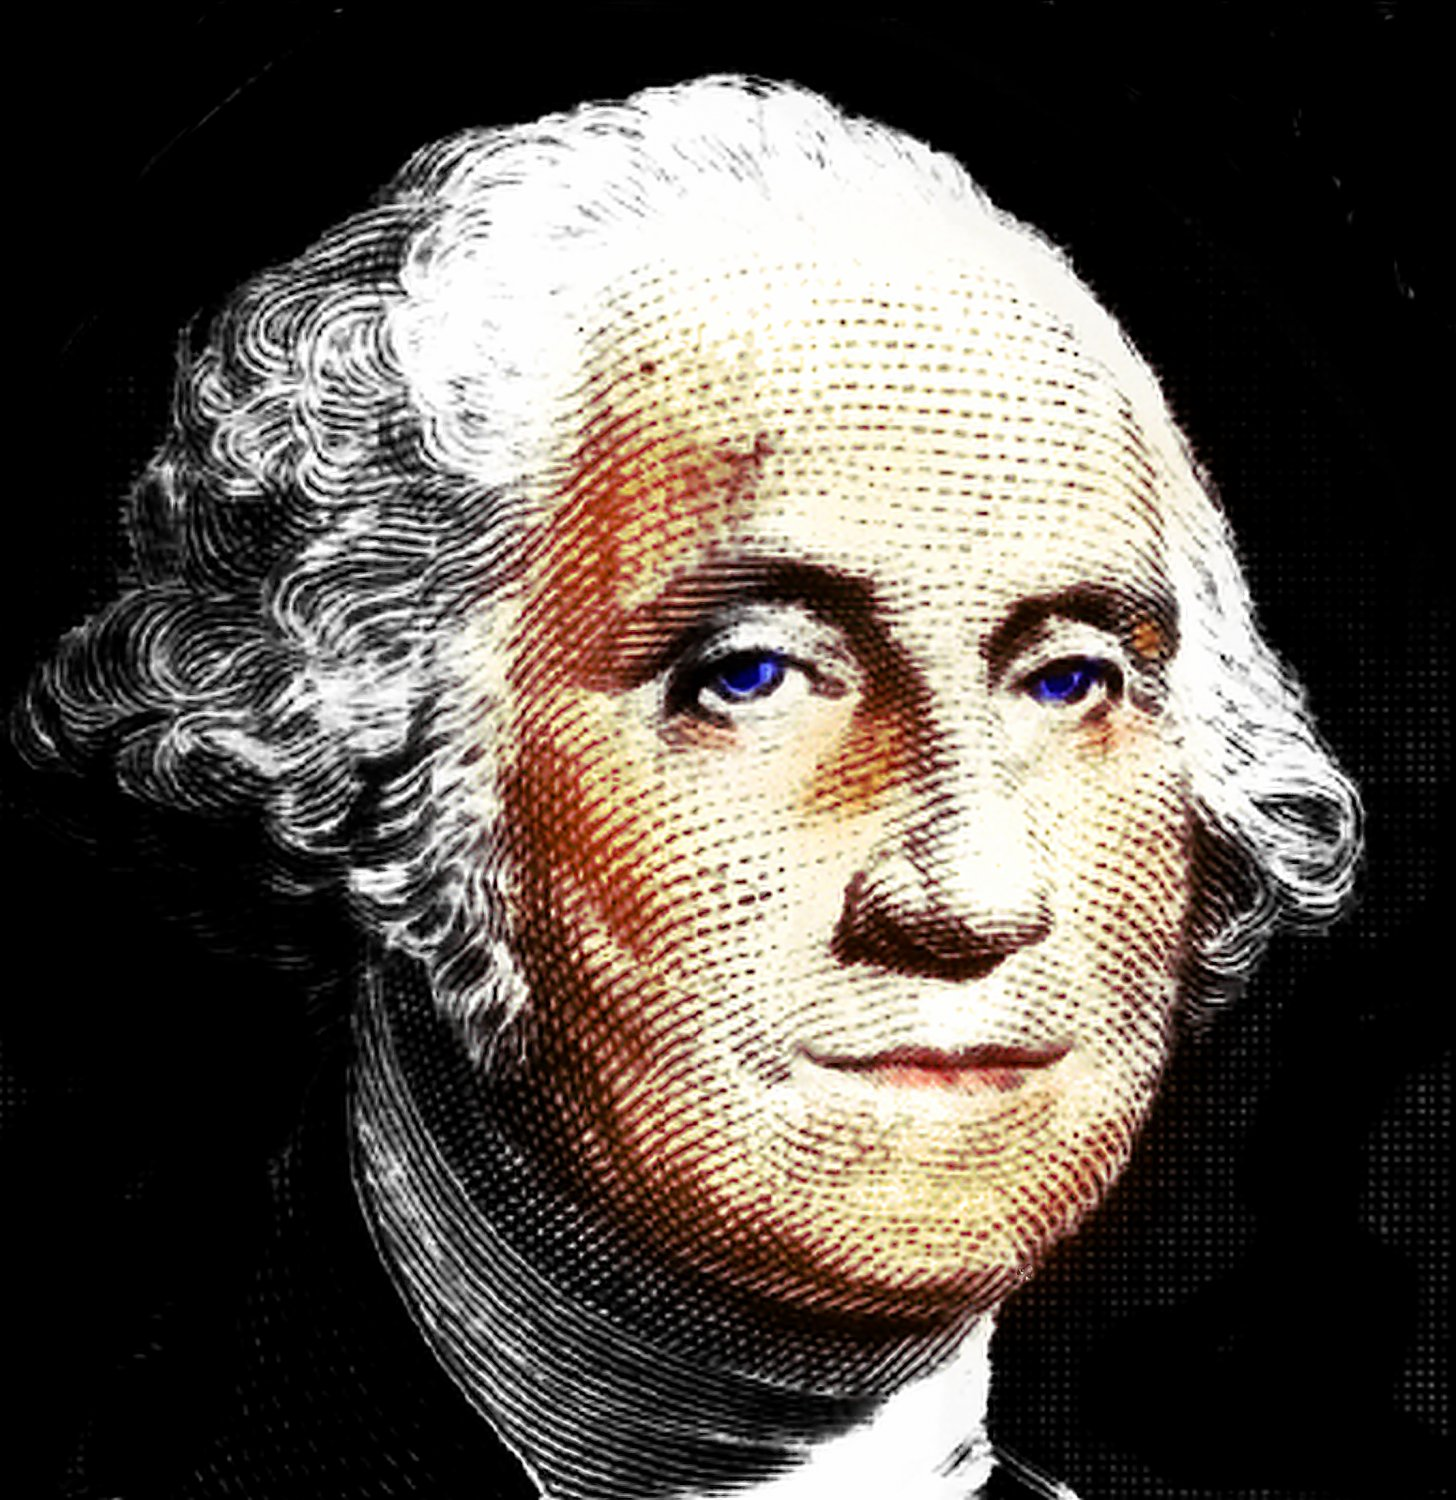 - Ole smilin' blue-eyed George, our very first president. - - George Washington - with blue eyes and his Mona Lisa smile - - art  - photography - by Tony Karp